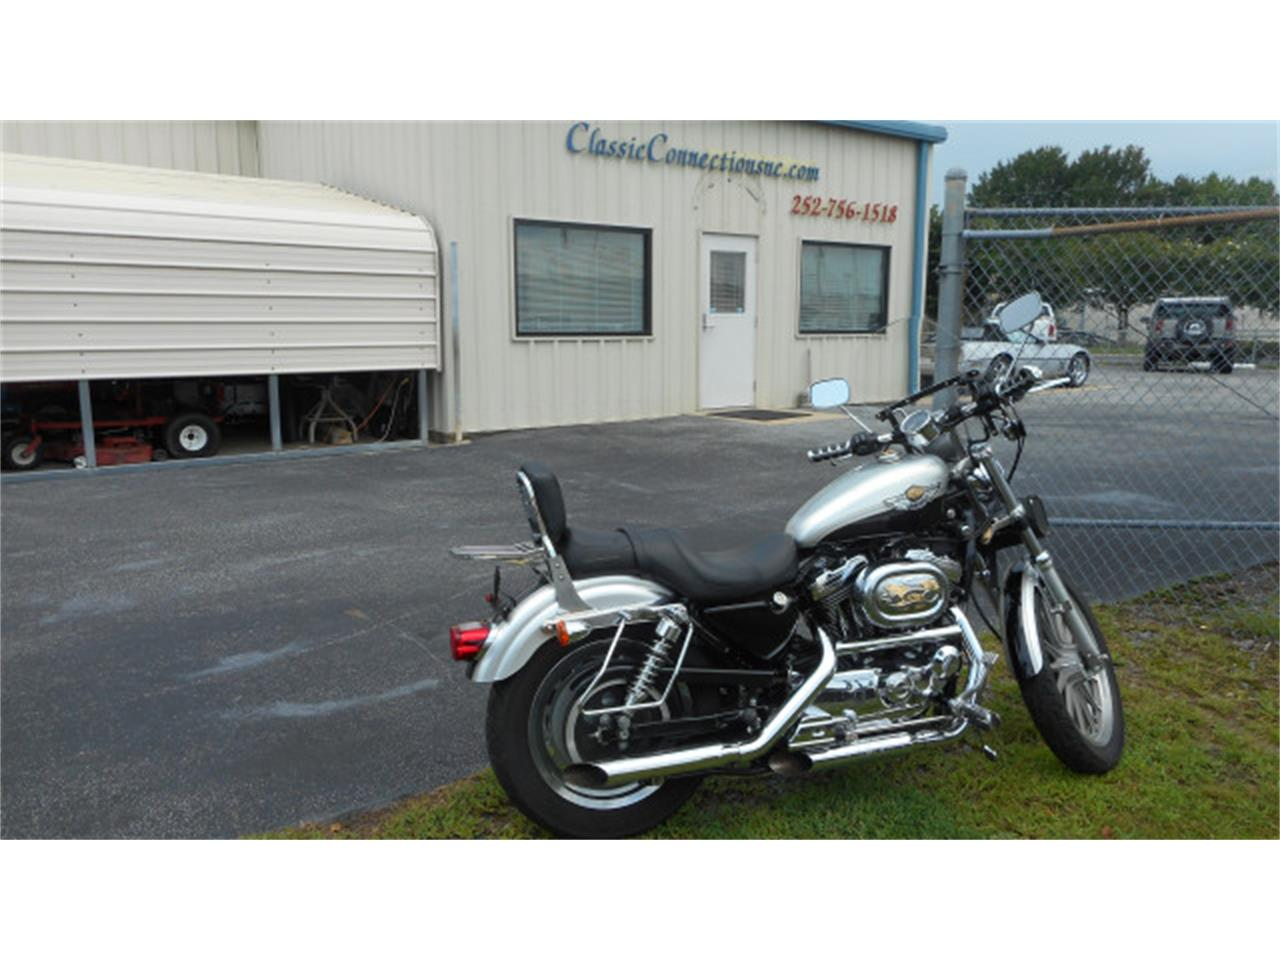 Large Picture of '03 Harley-Davidson Sportster located in Greenville North Carolina Offered by Classic Connections - LO7F